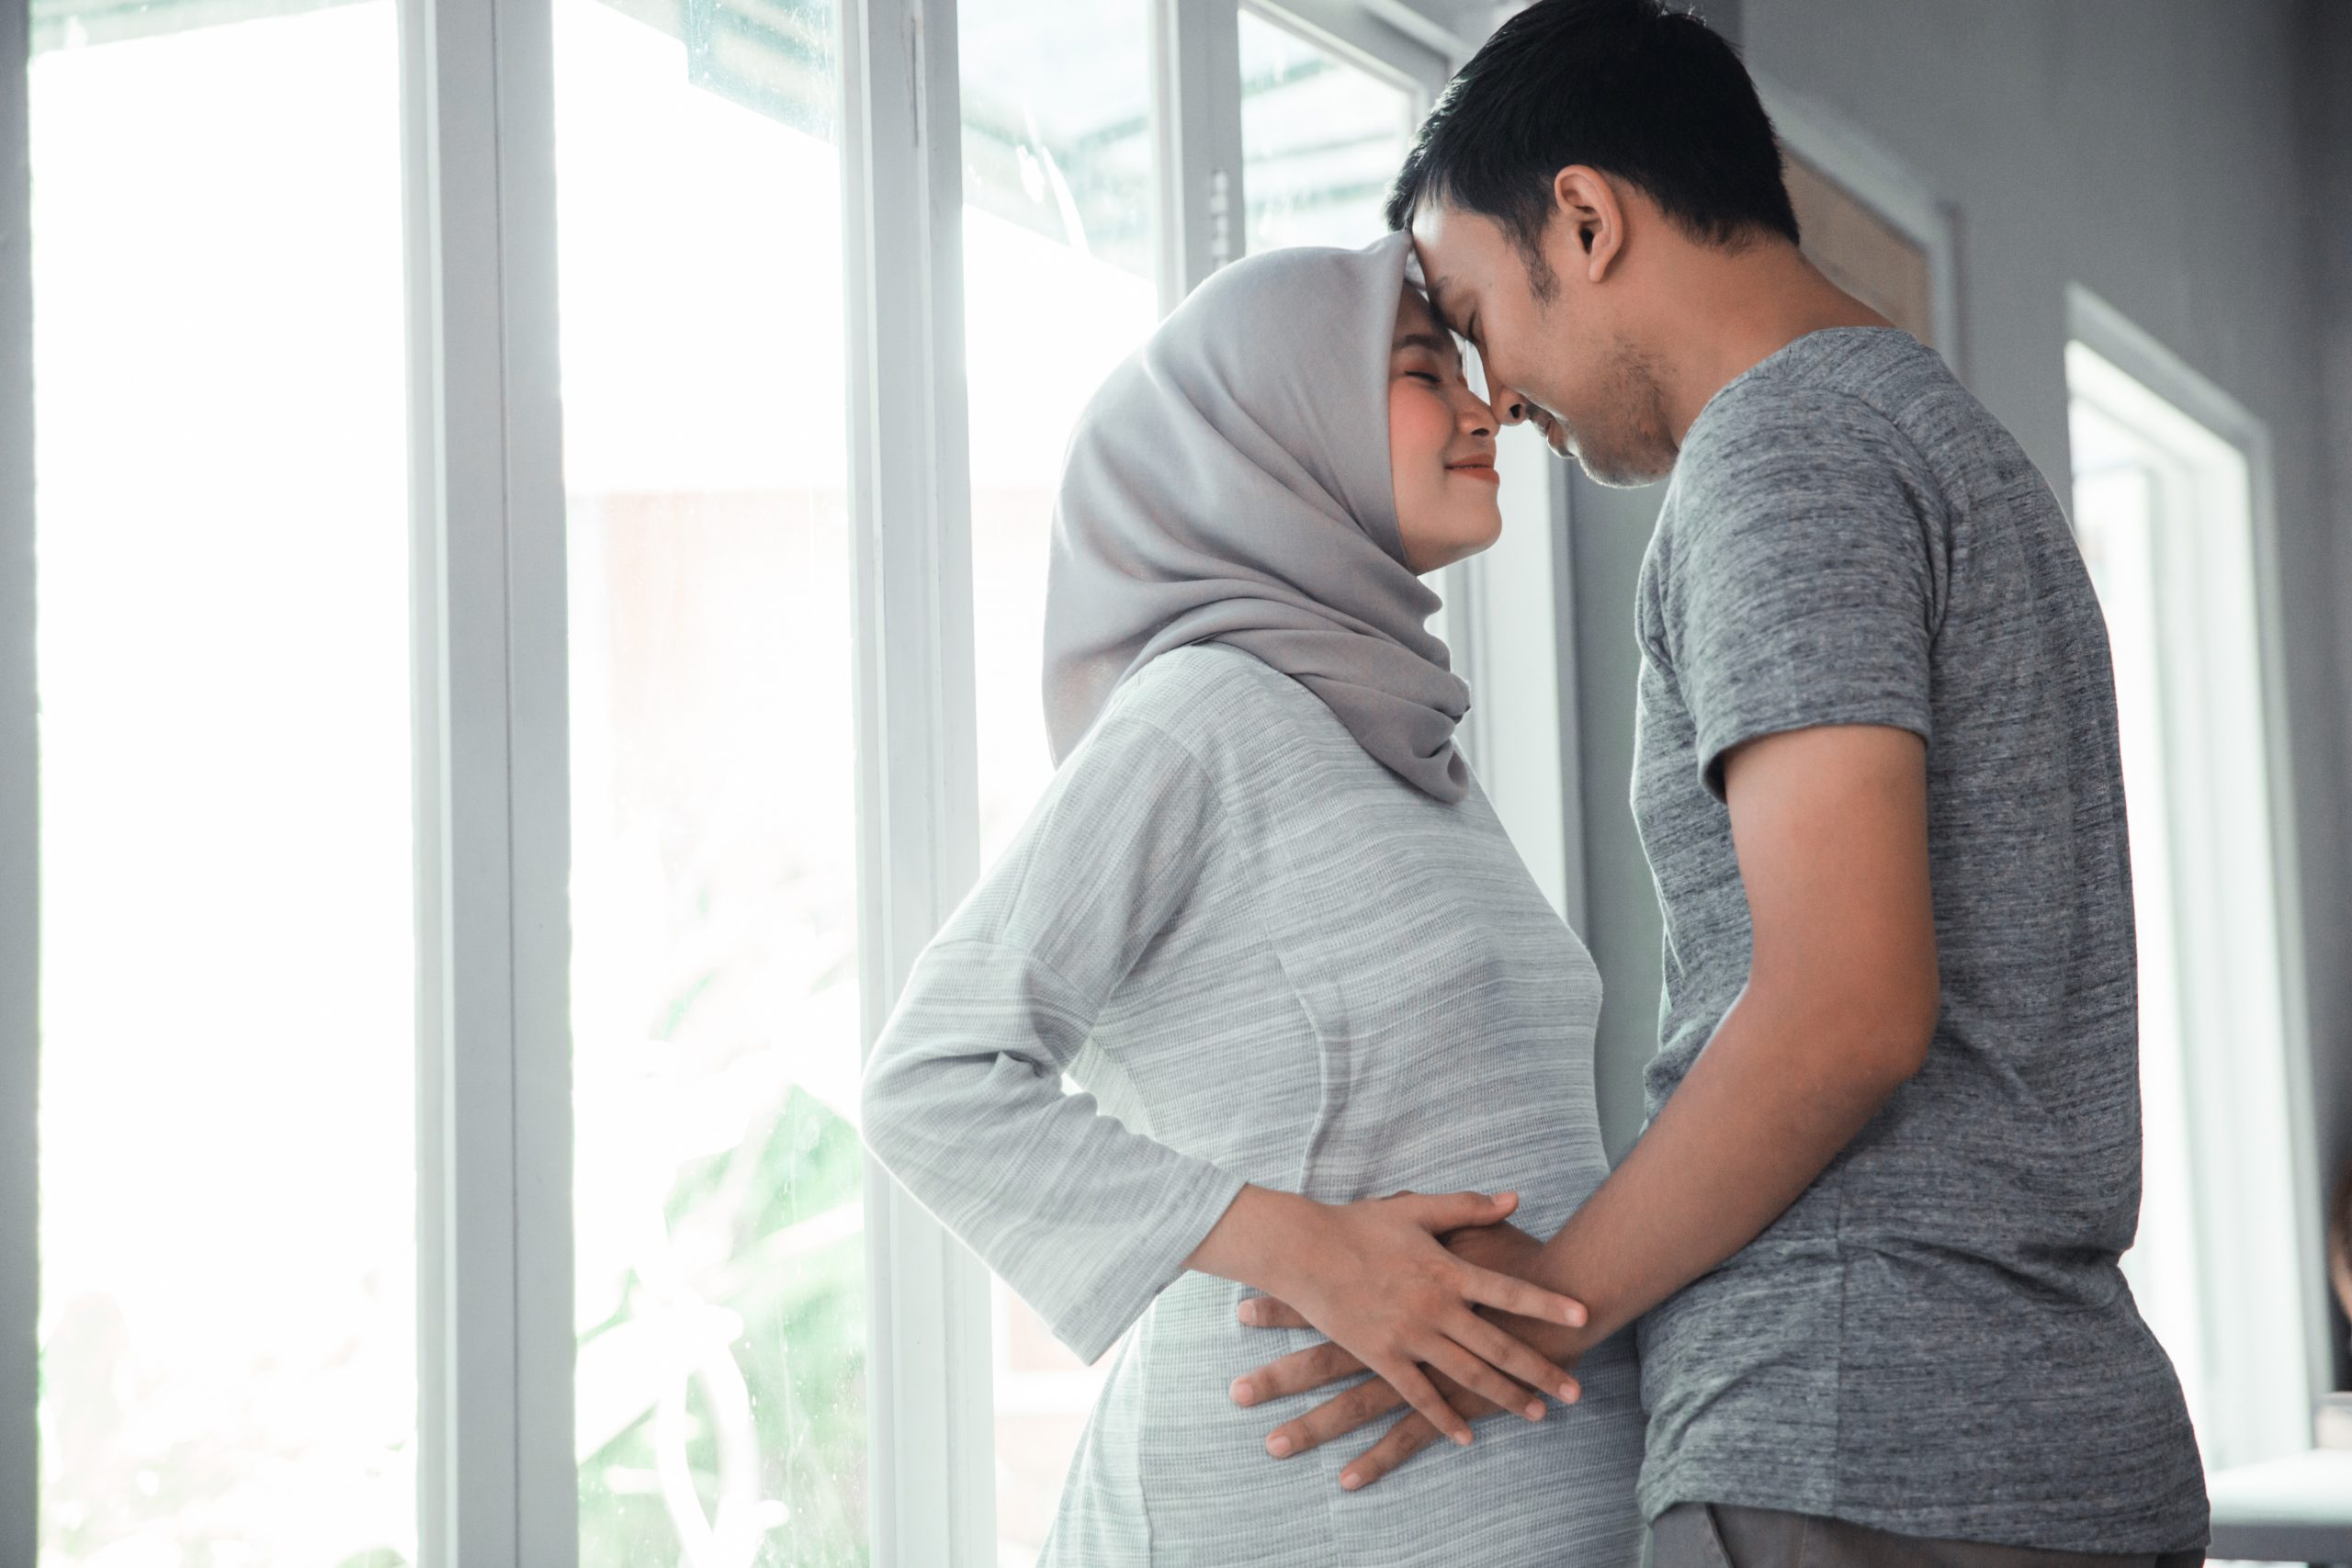 muslim-pregnant-woman-with-her-husband-scaled.jpg